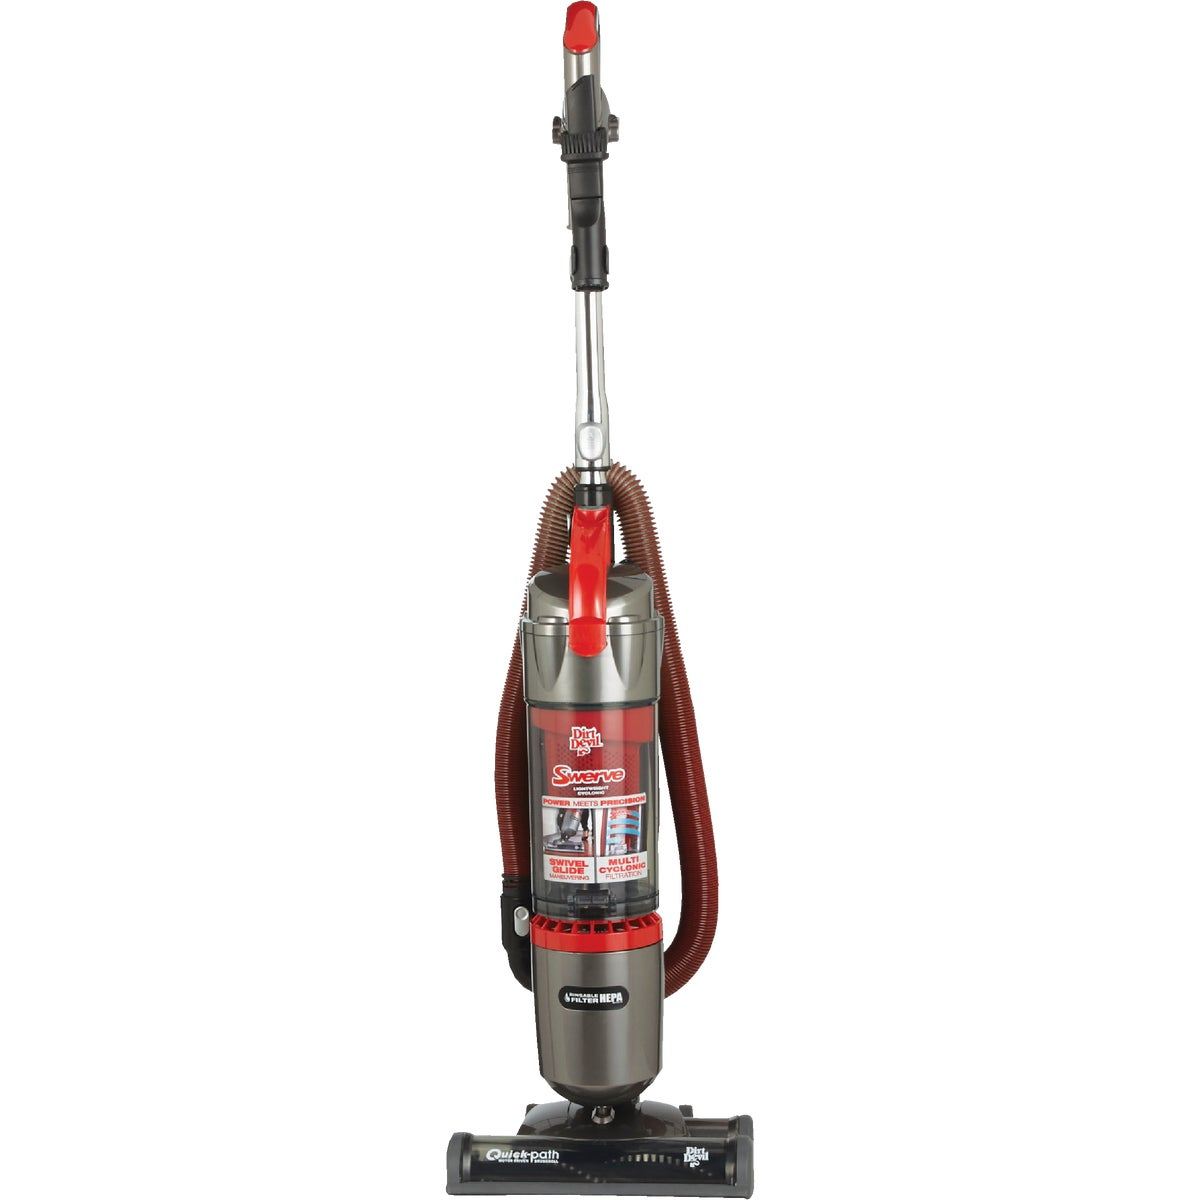 SWERVE BAGLESS VACUUM - UD70150 by Royal Appliance